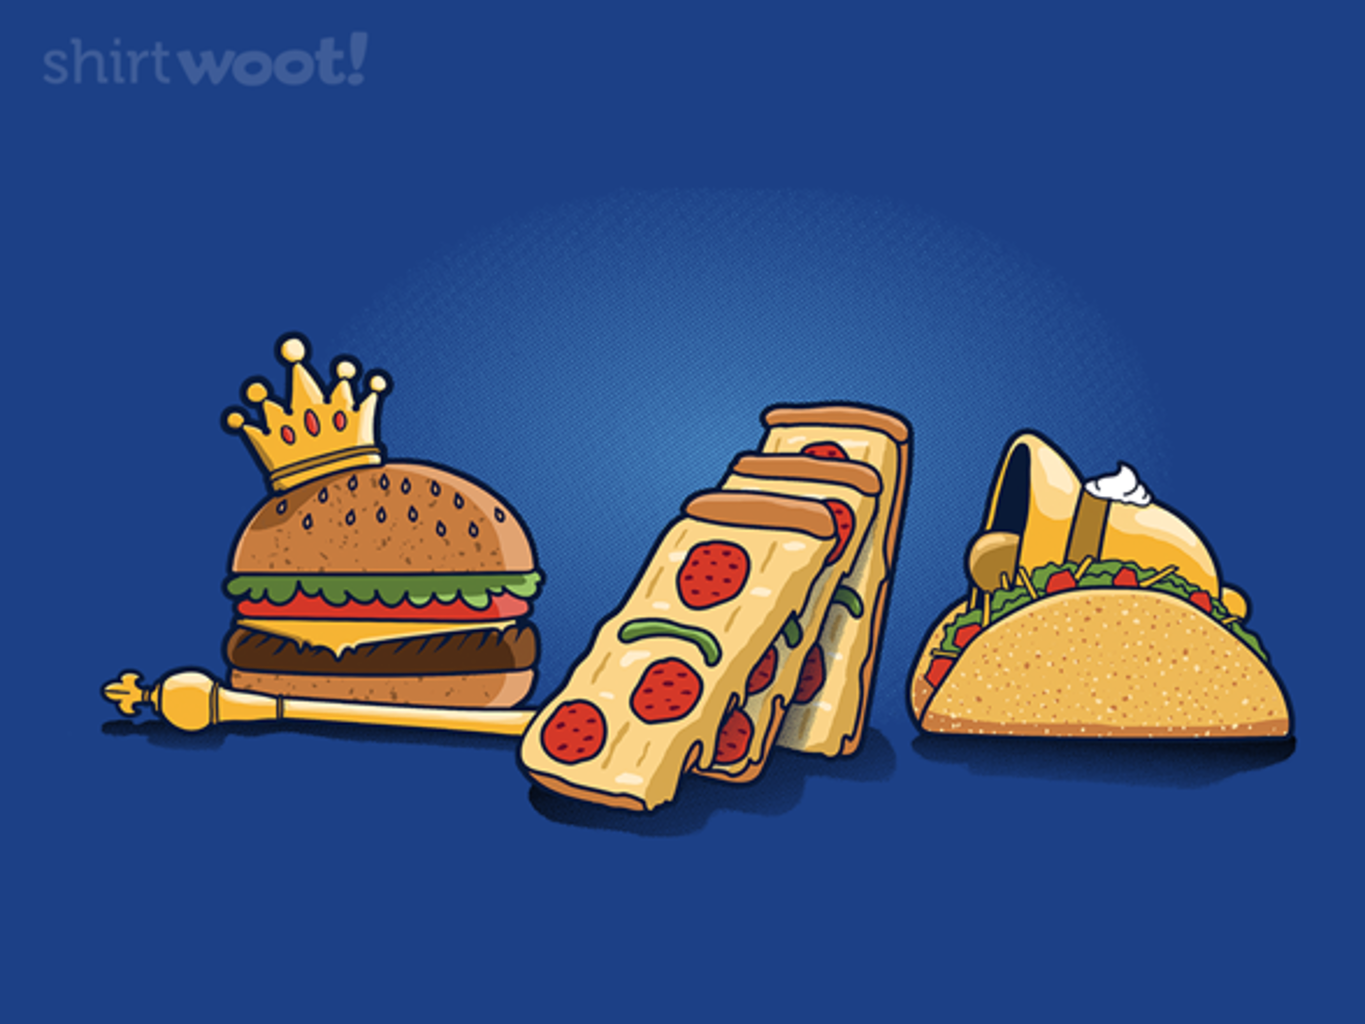 Woot!: We Are What We Eat - $15.00 + Free shipping